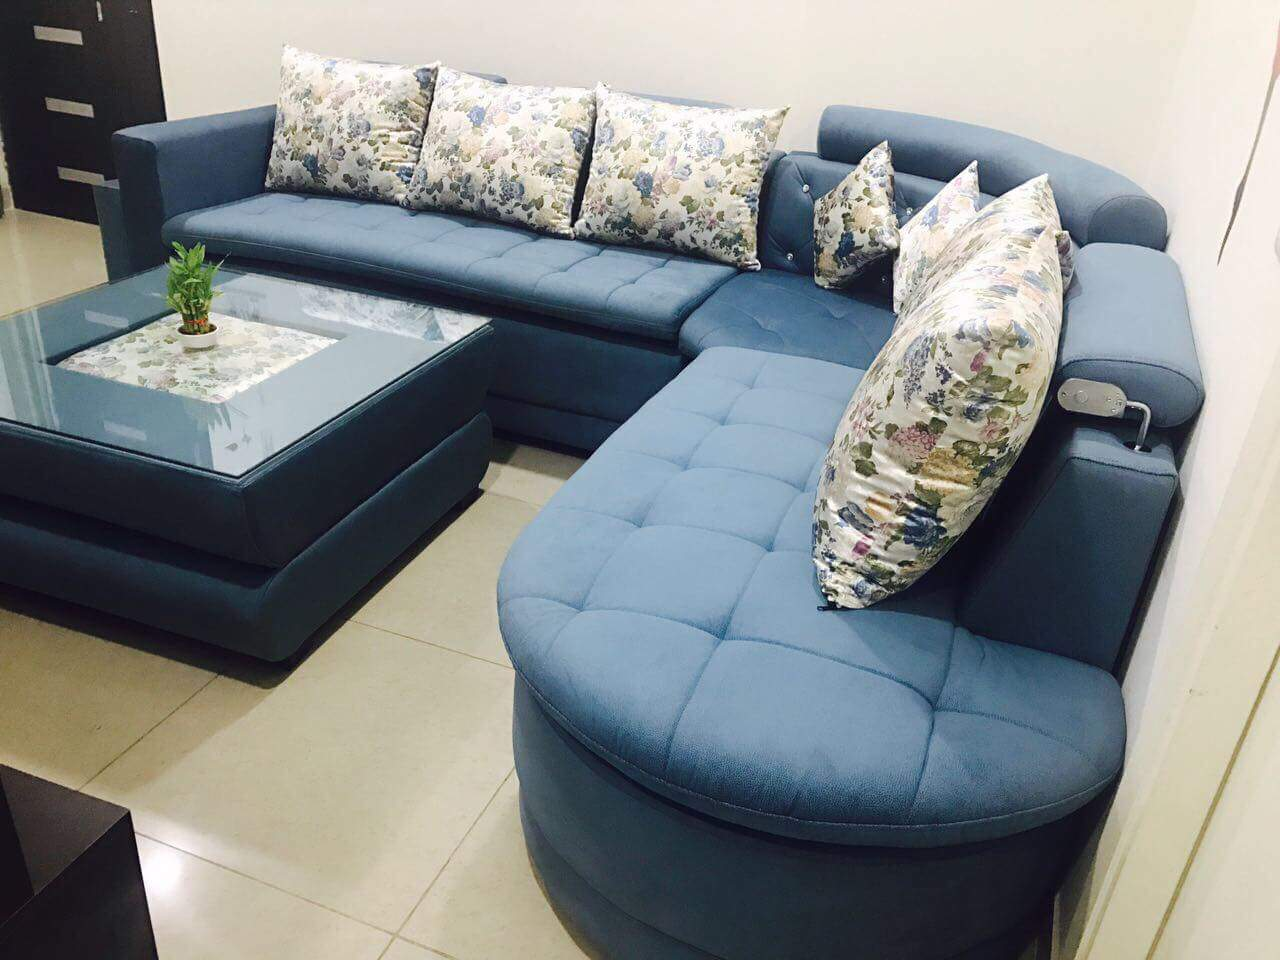 How to Choose Among Different Sofa Types